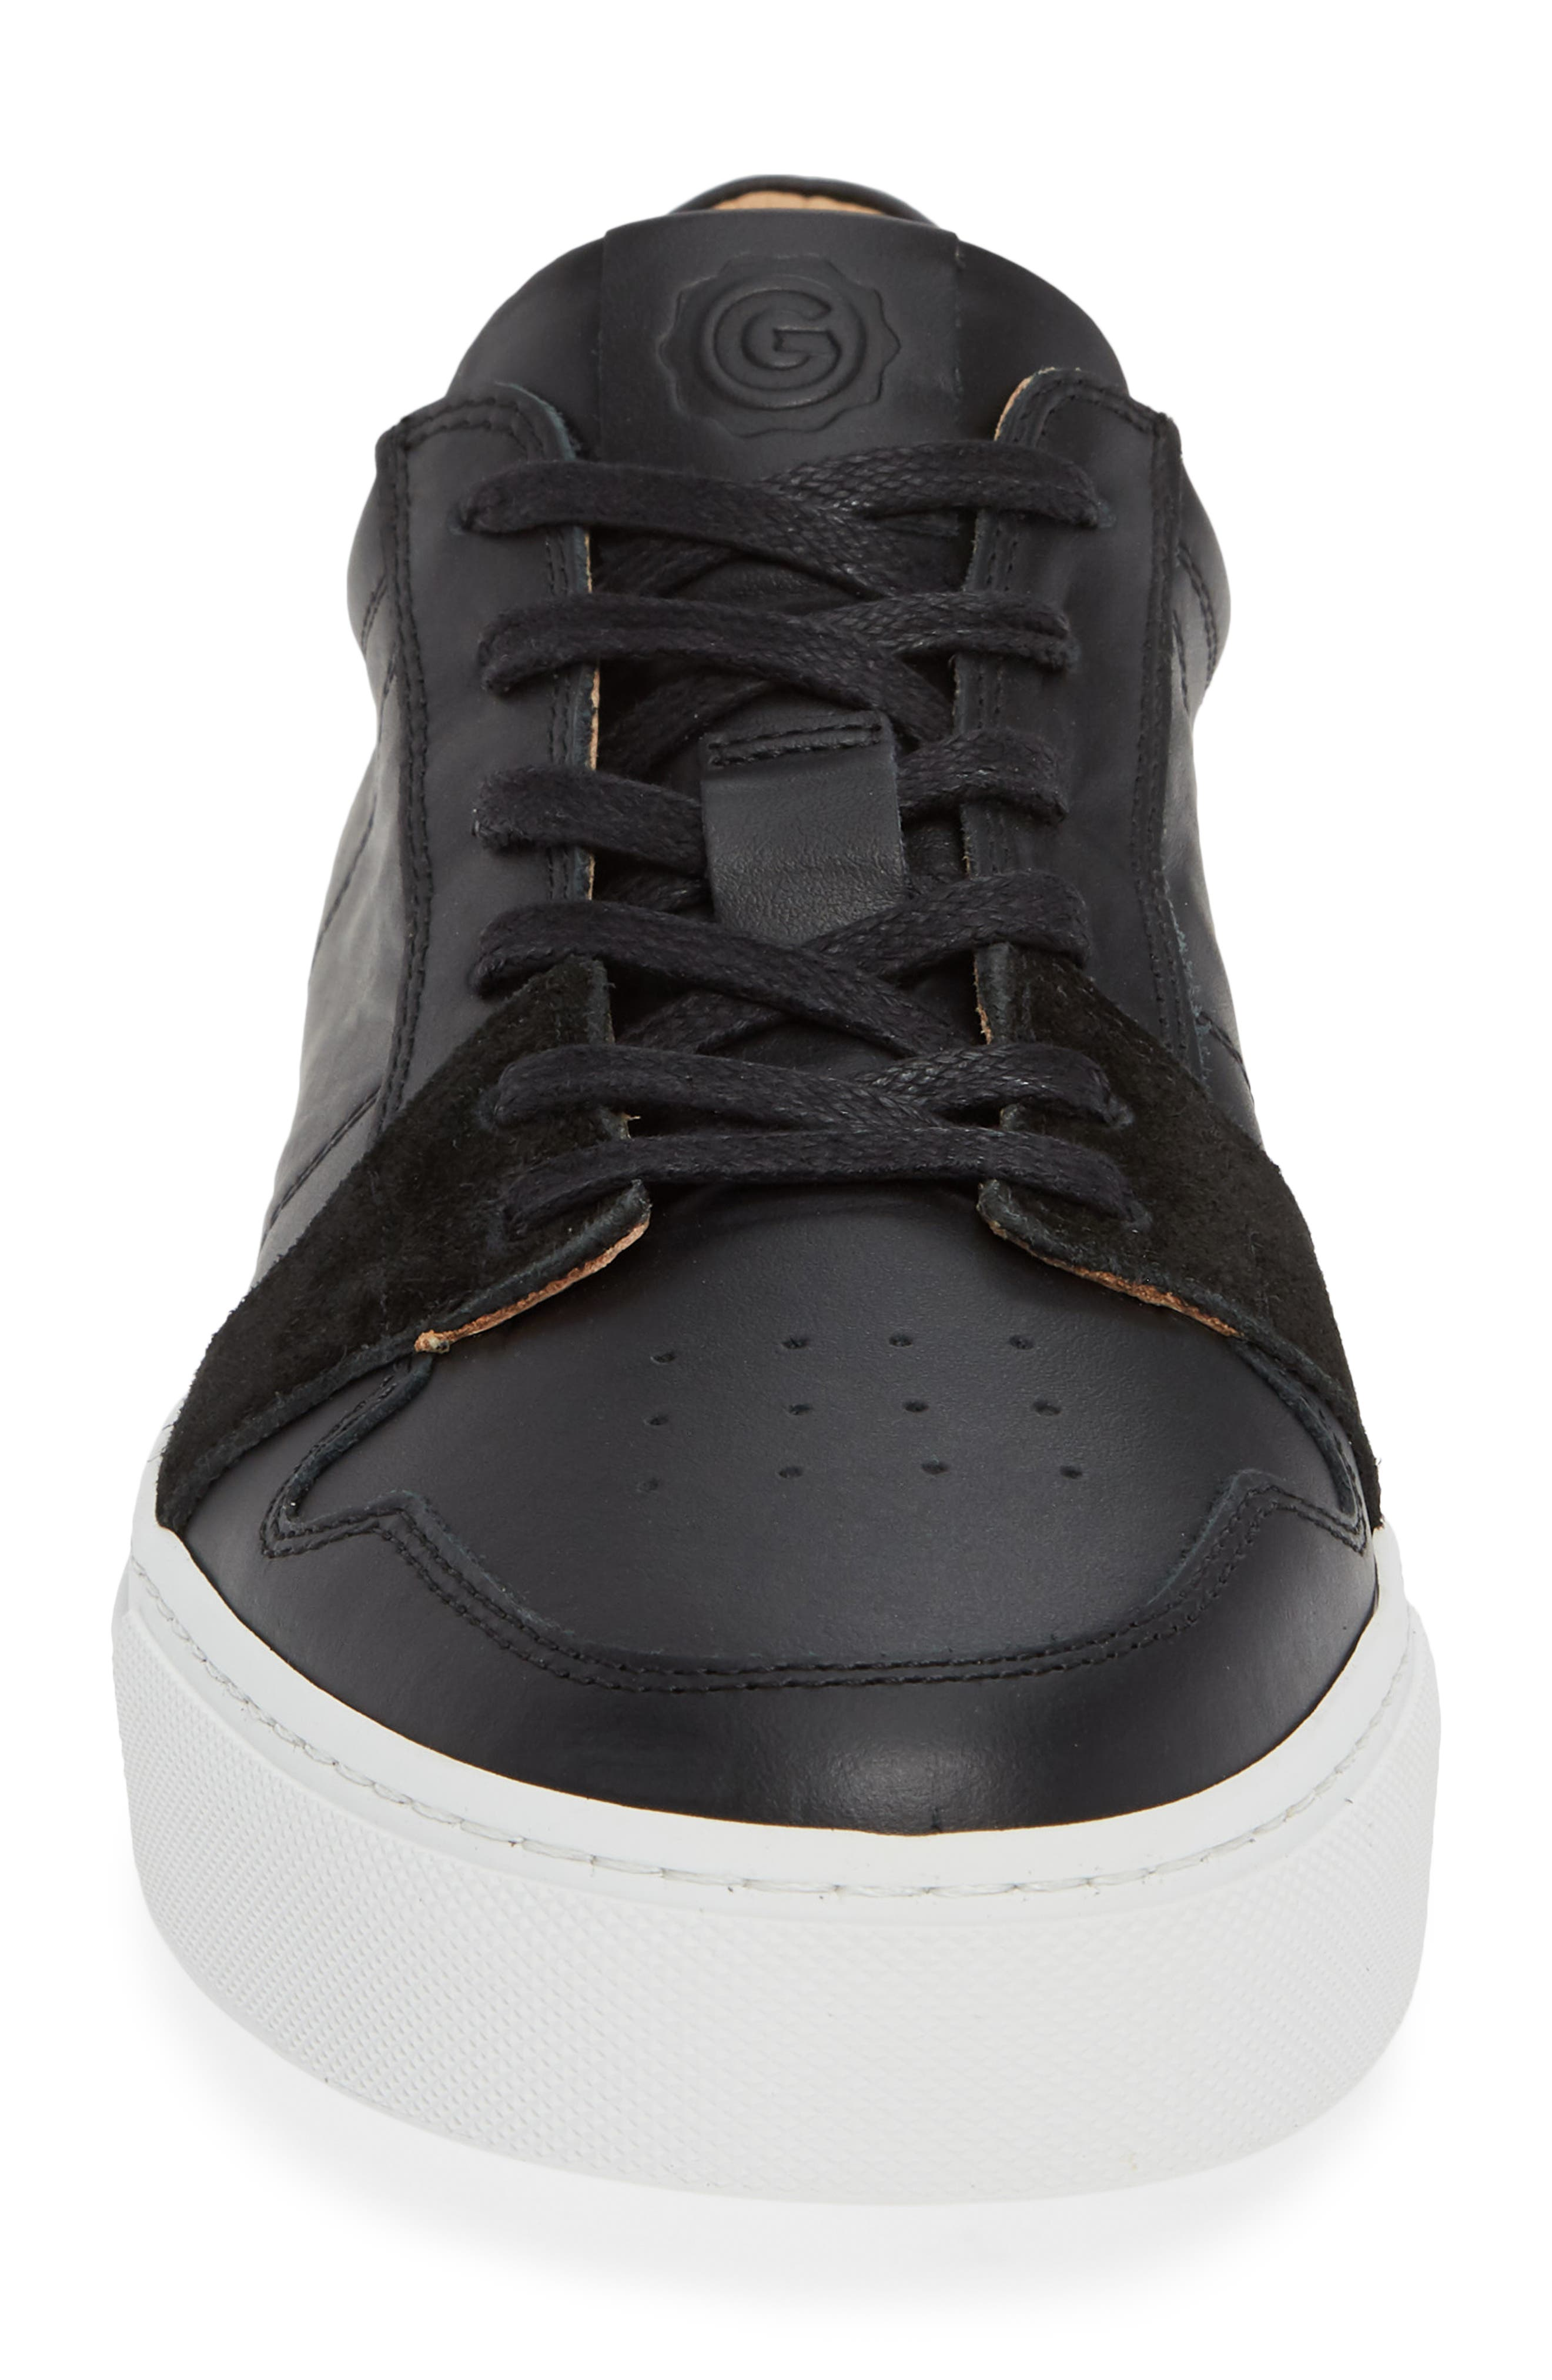 Nick Wooster x GREATS Court Low Top Sneaker,                             Alternate thumbnail 4, color,                             BLACK